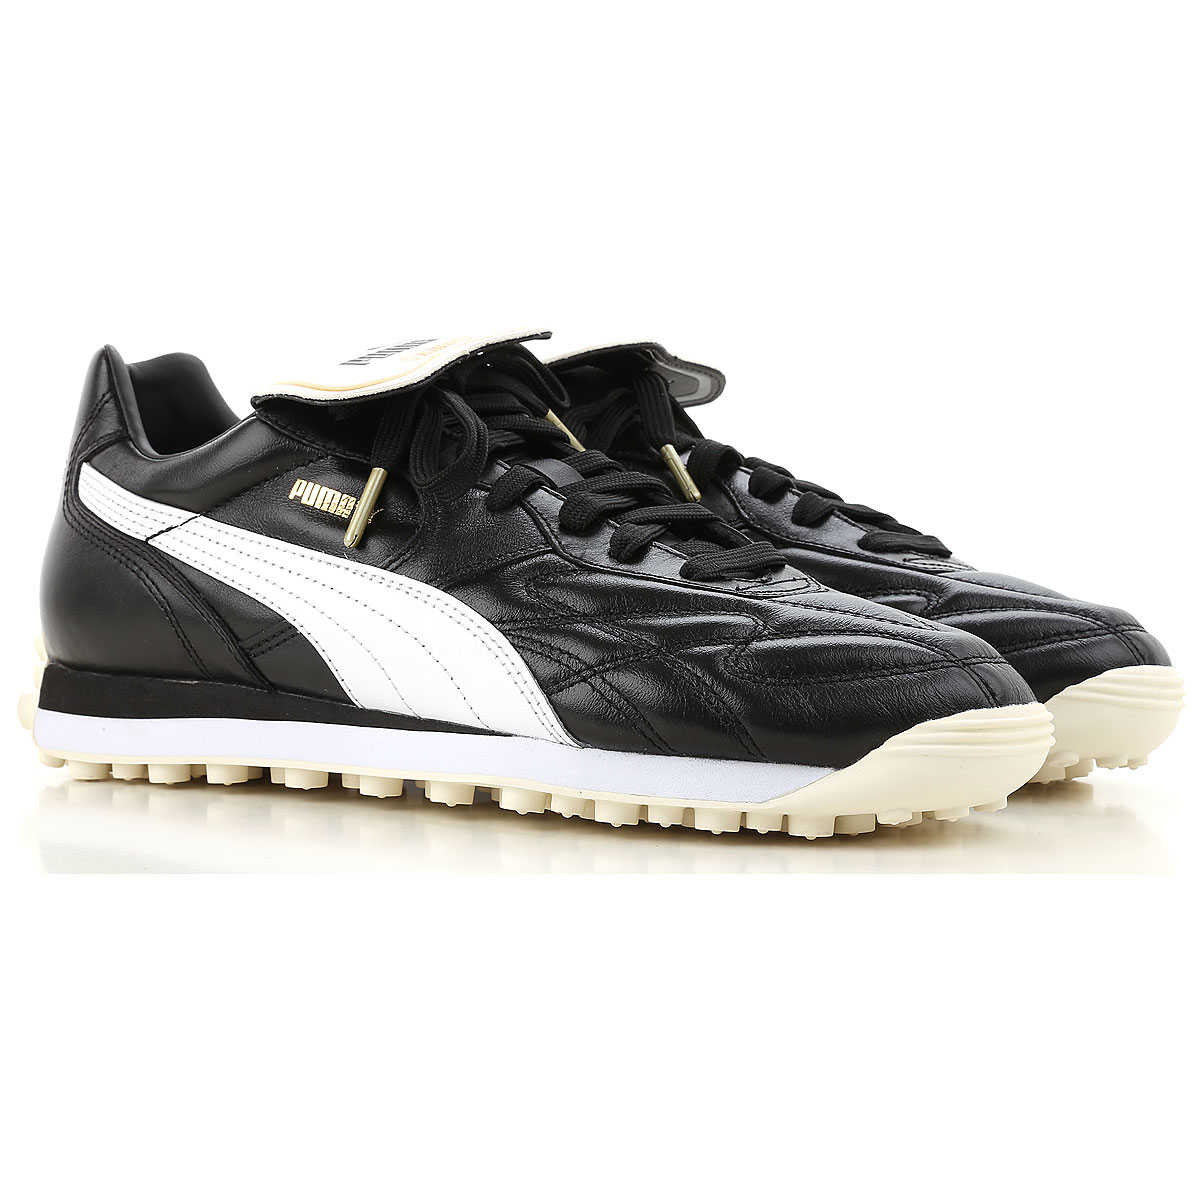 Puma Sneakers for Men On Sale